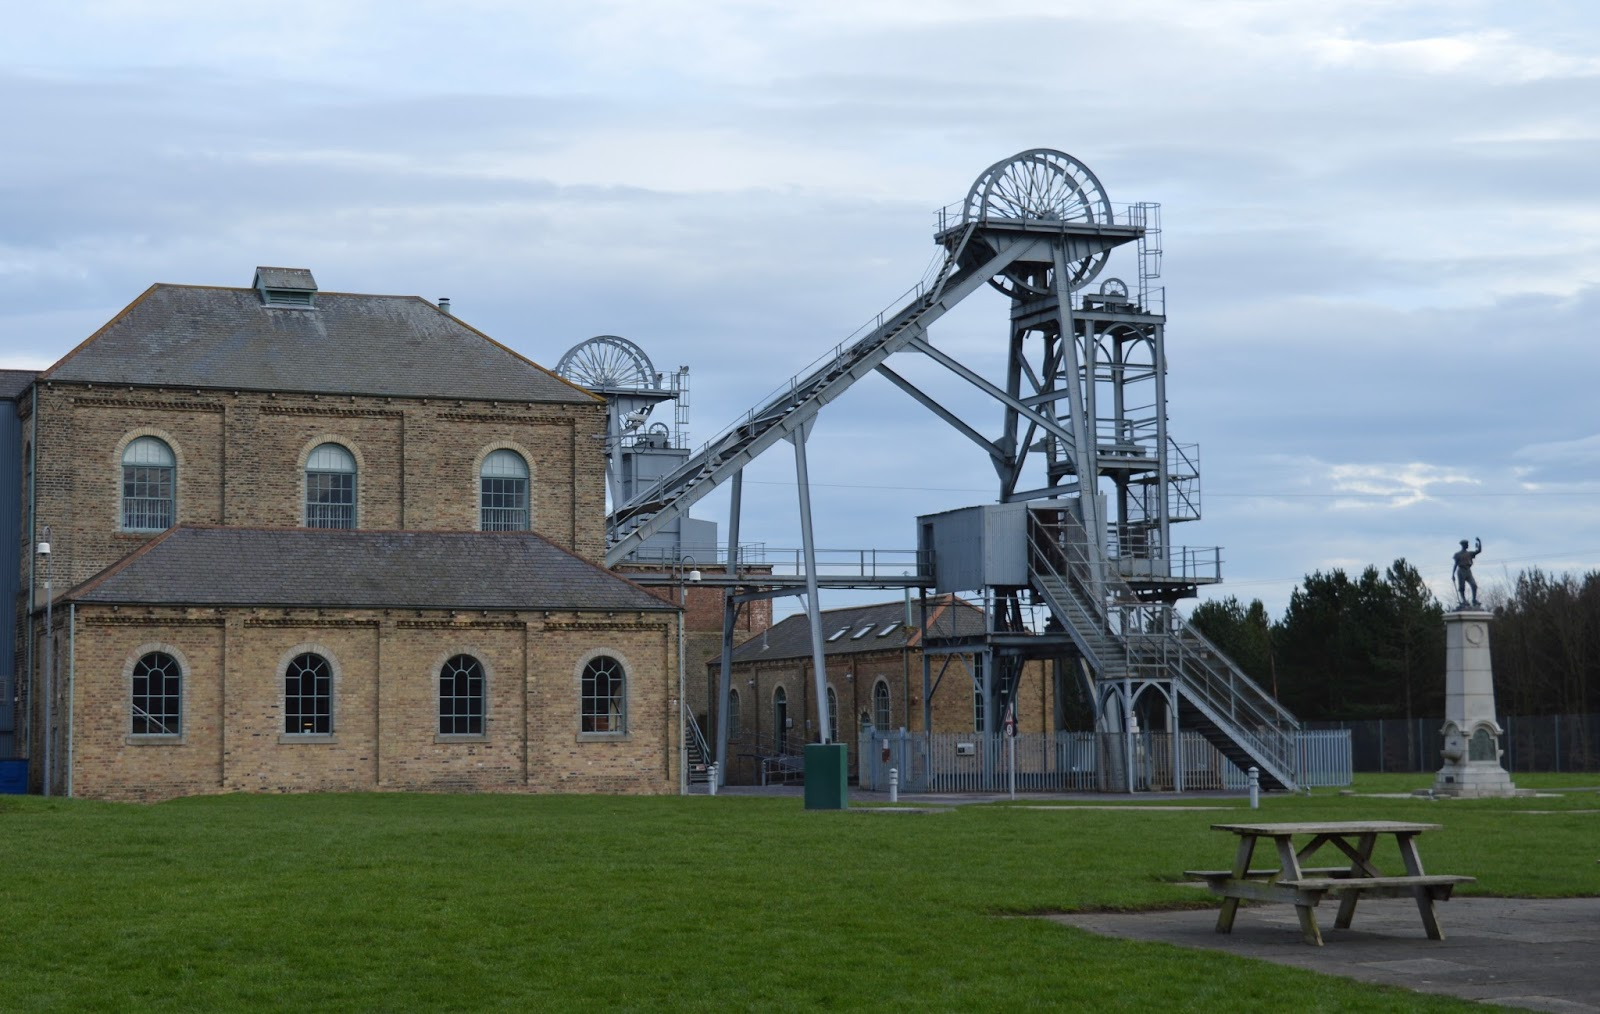 No more parking charge at Woodhorn & new annual pass scheme announced